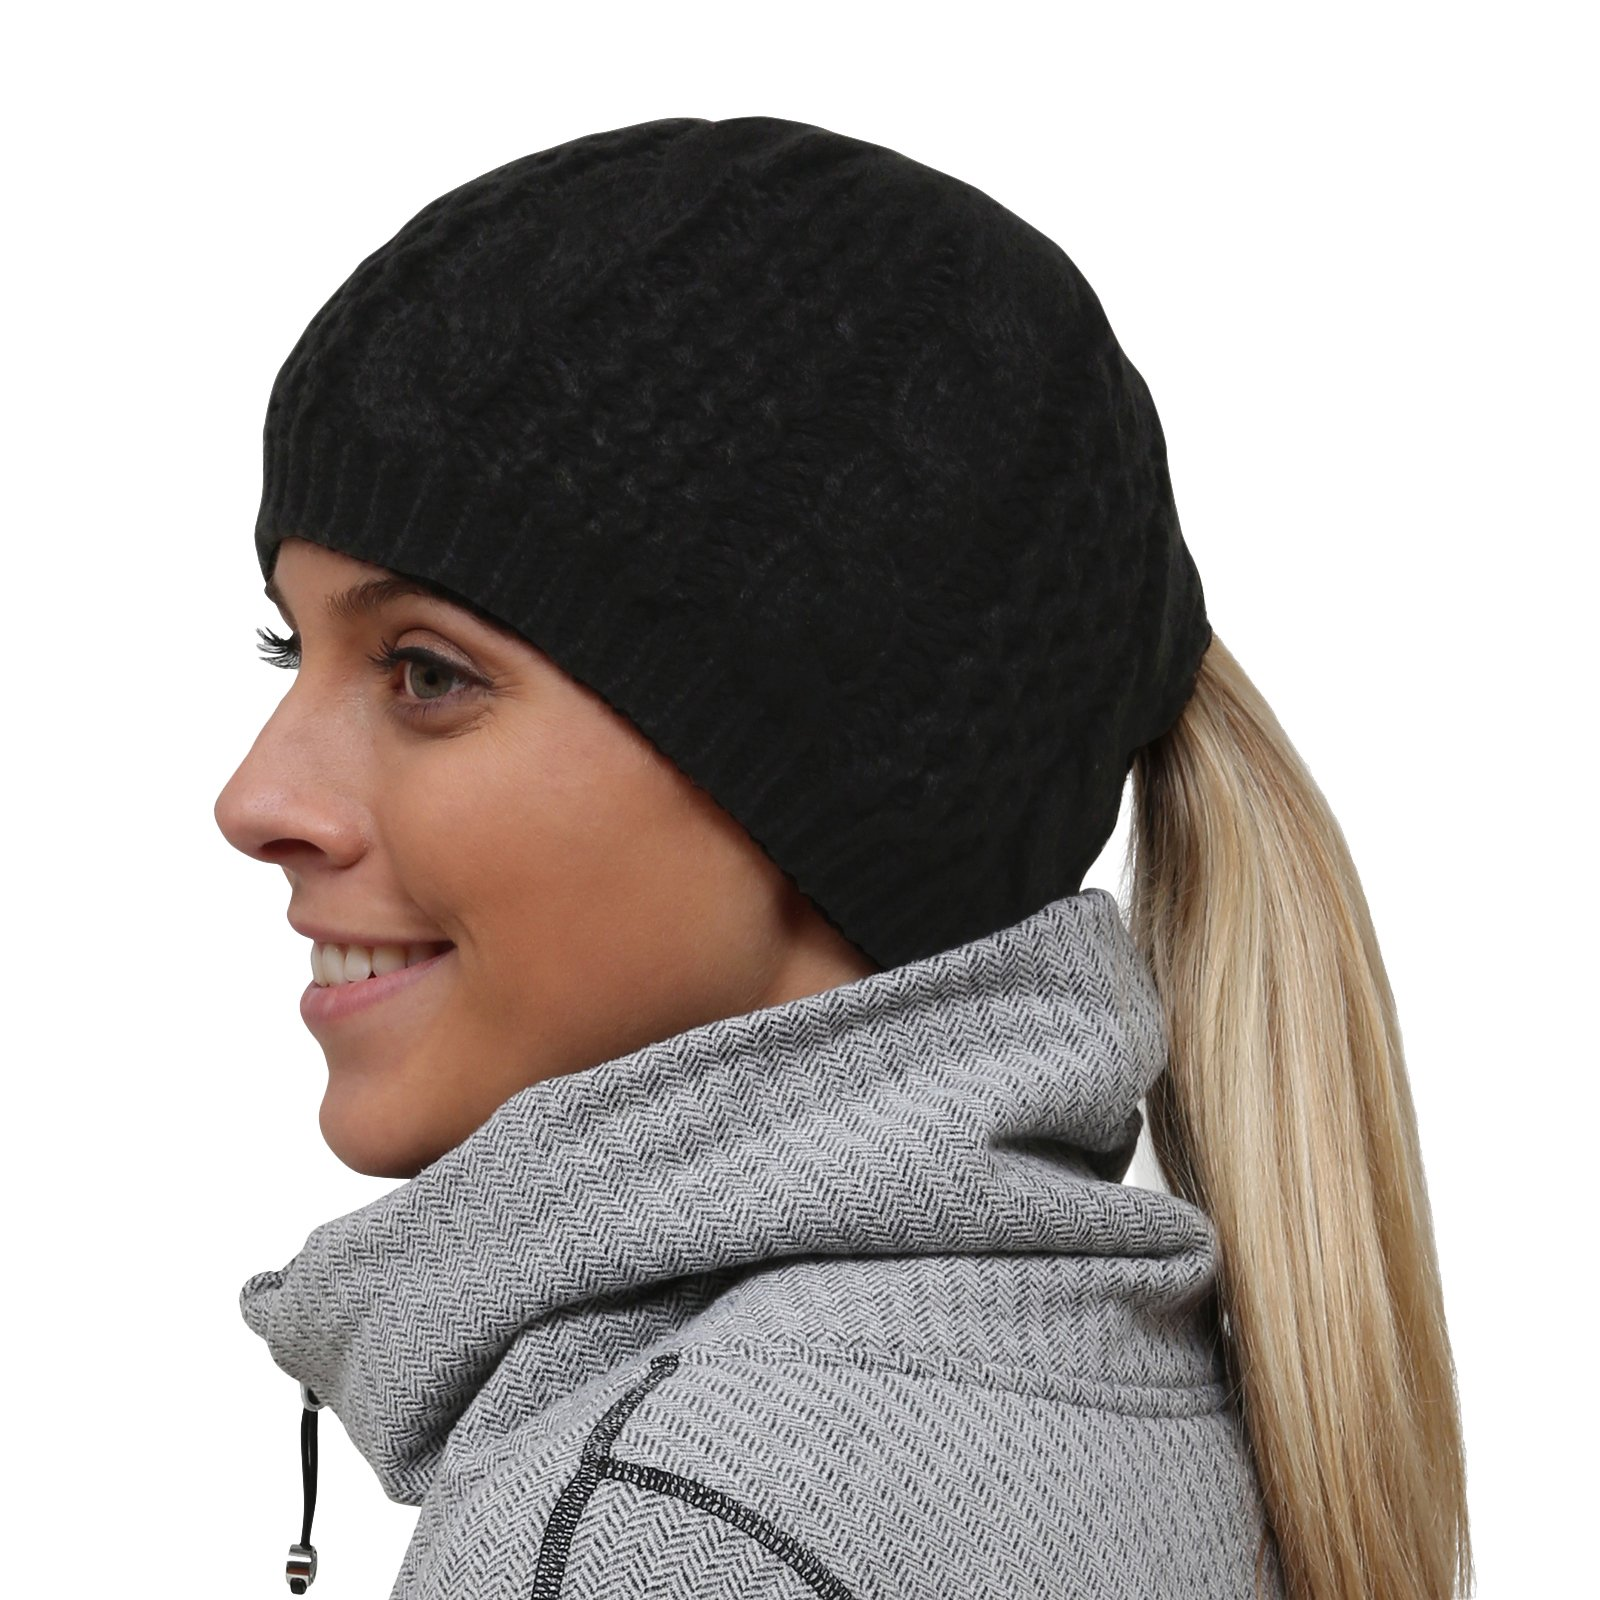 TrailHeads Women's Cable Knit Ponytail Beanie - black